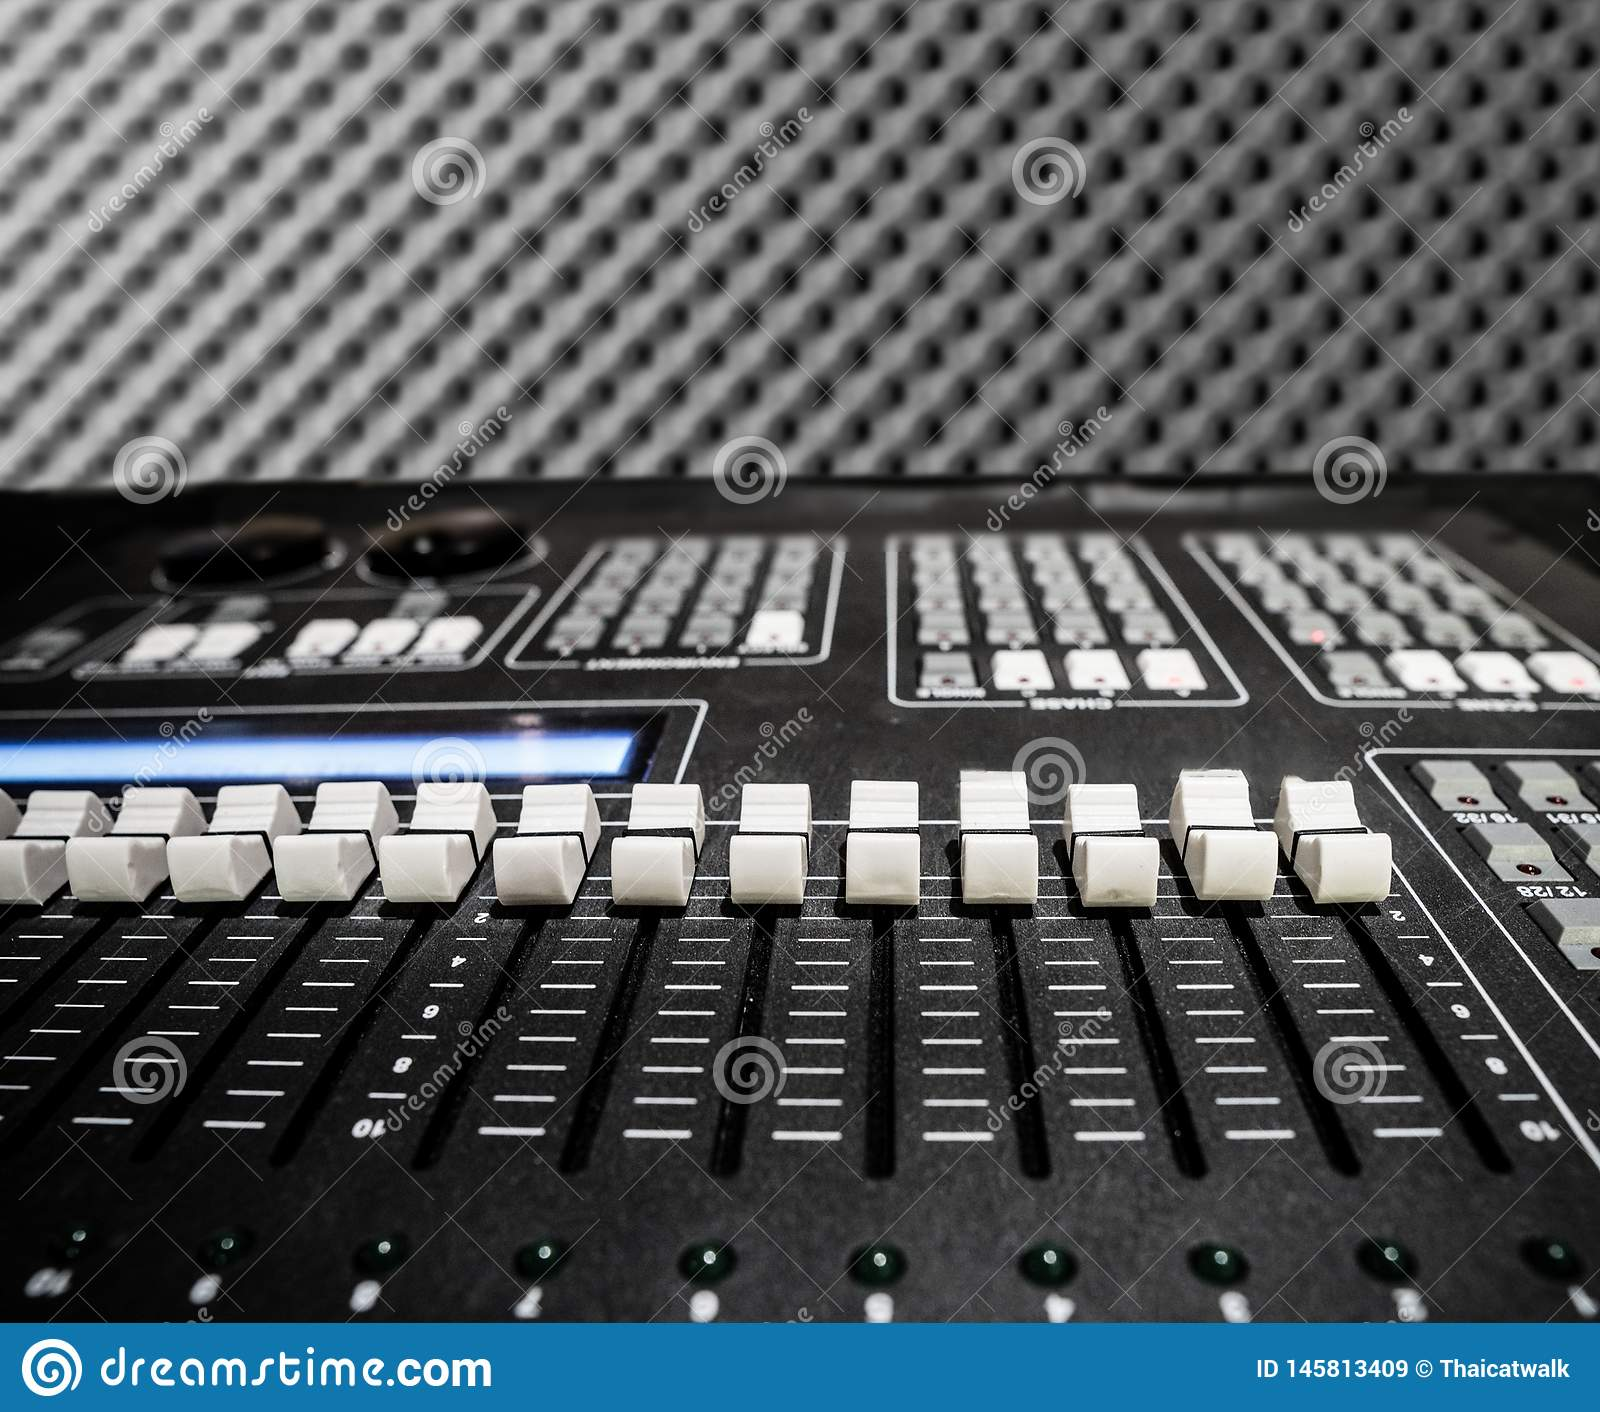 Audio Controller equipment with many bar level